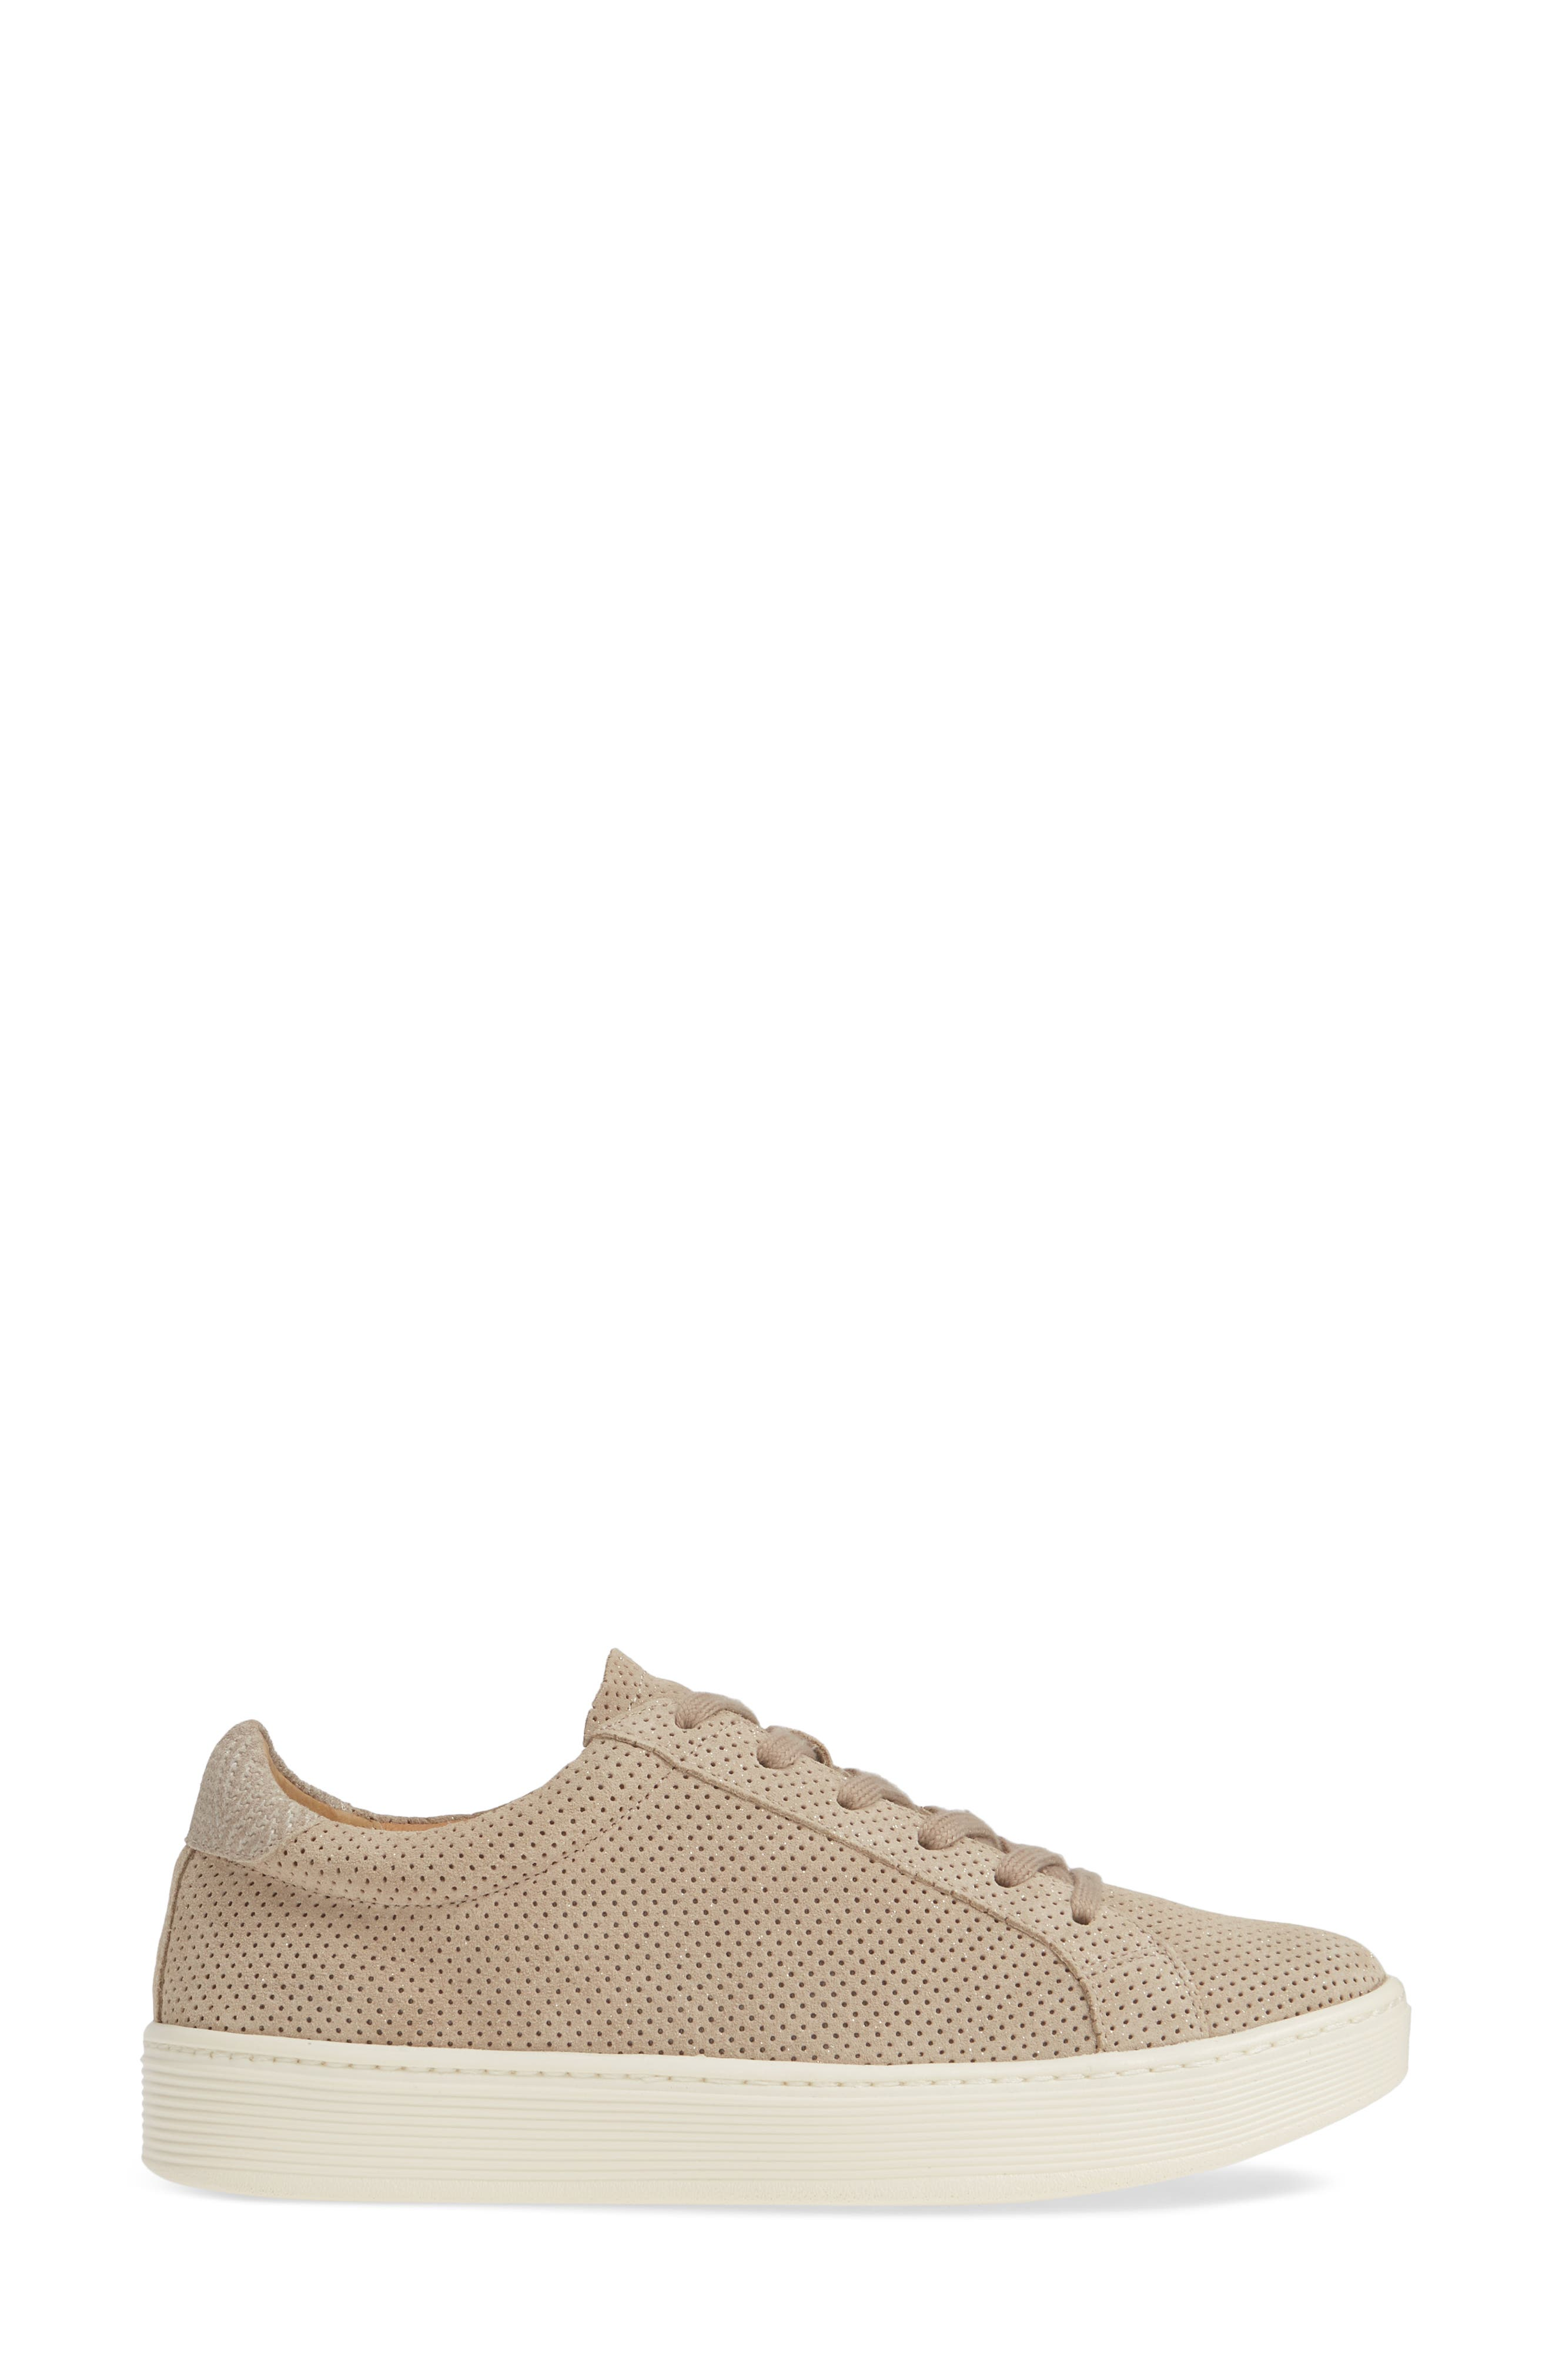 SÖFFT, Somers Perforated Sneaker, Alternate thumbnail 3, color, MOONSTONE GREY SUEDE